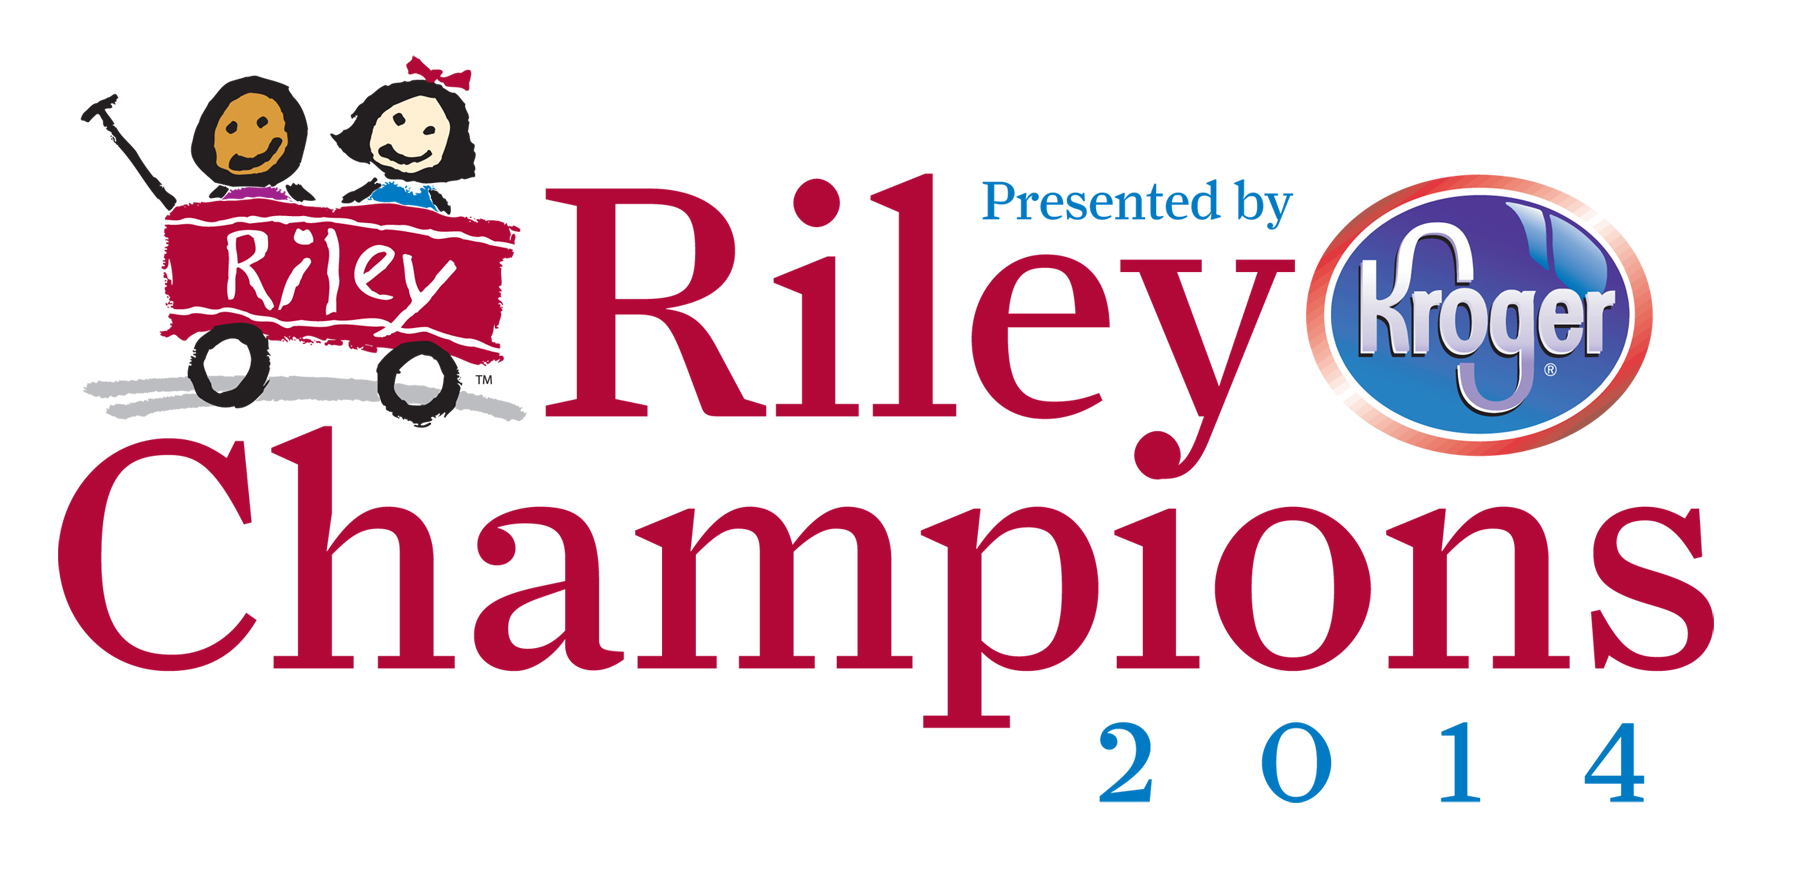 Riley Champions Presented by Kroger